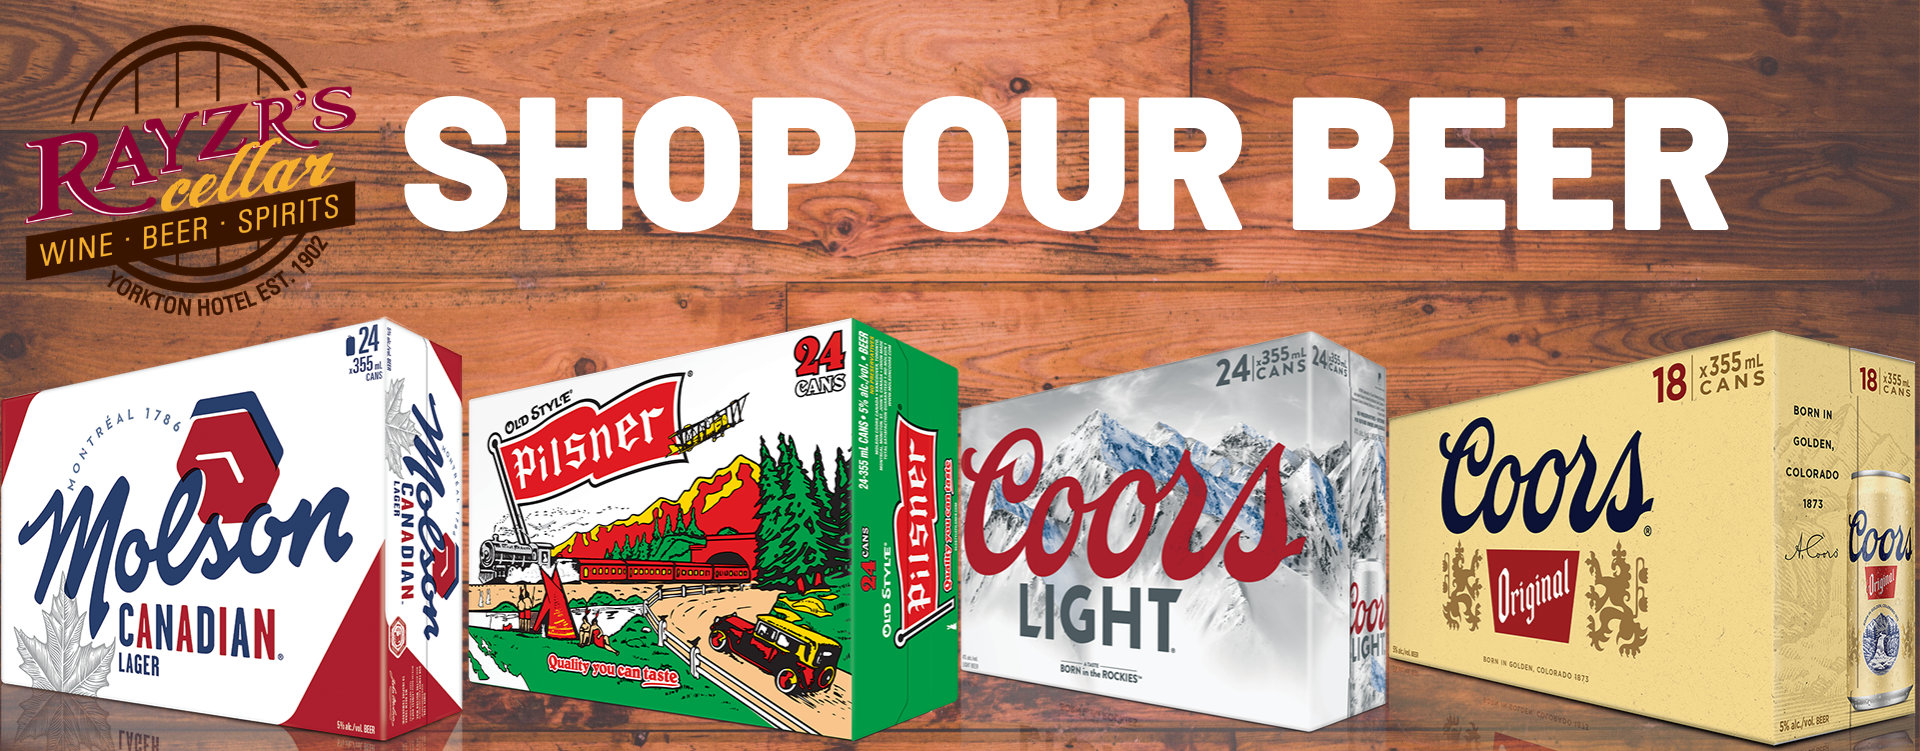 Shop Our Beer